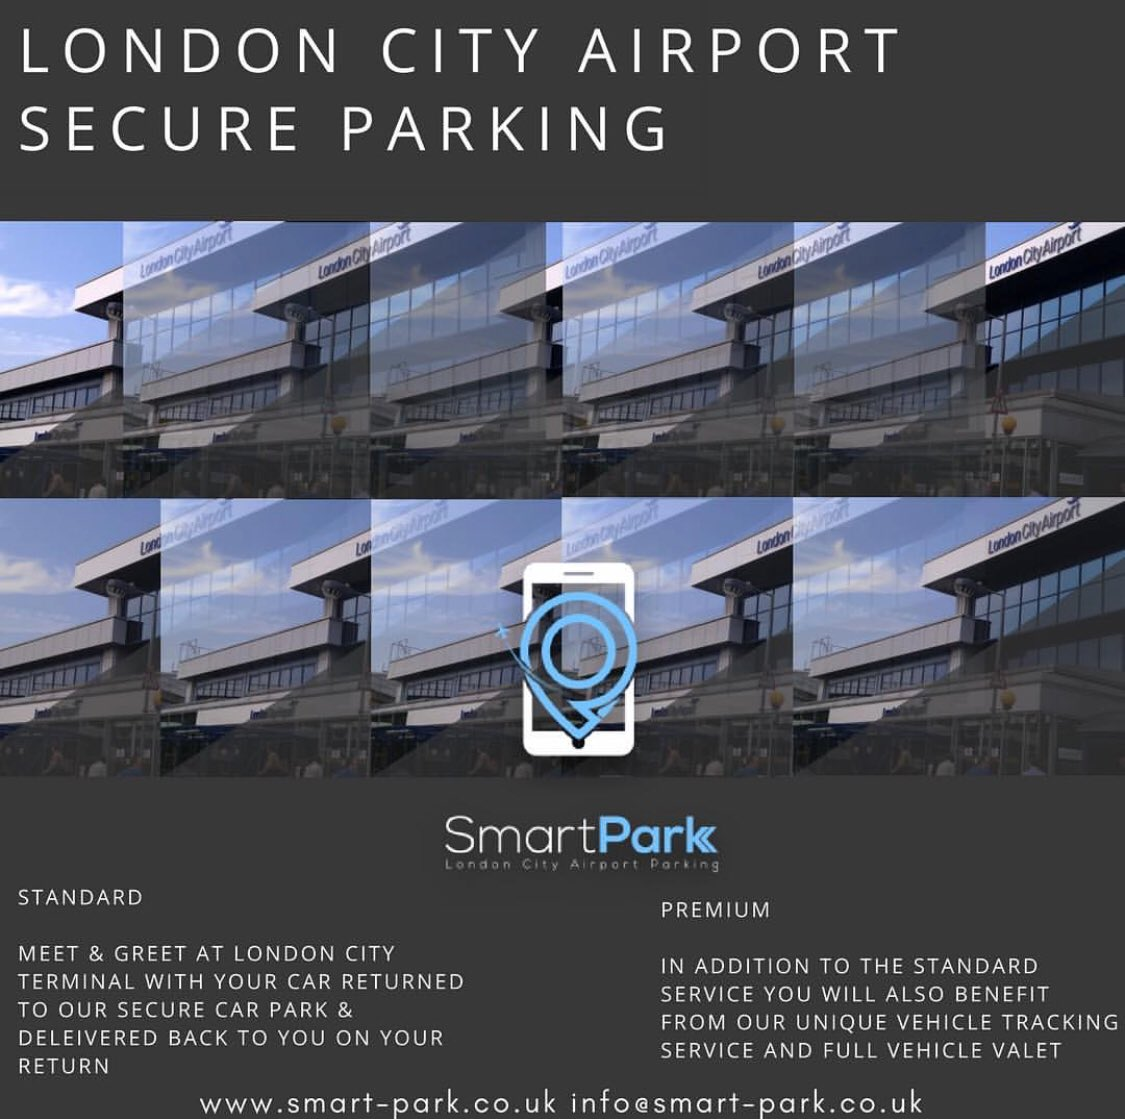 Smart Park On Twitter City Airport Meet And Greet Parking To Book